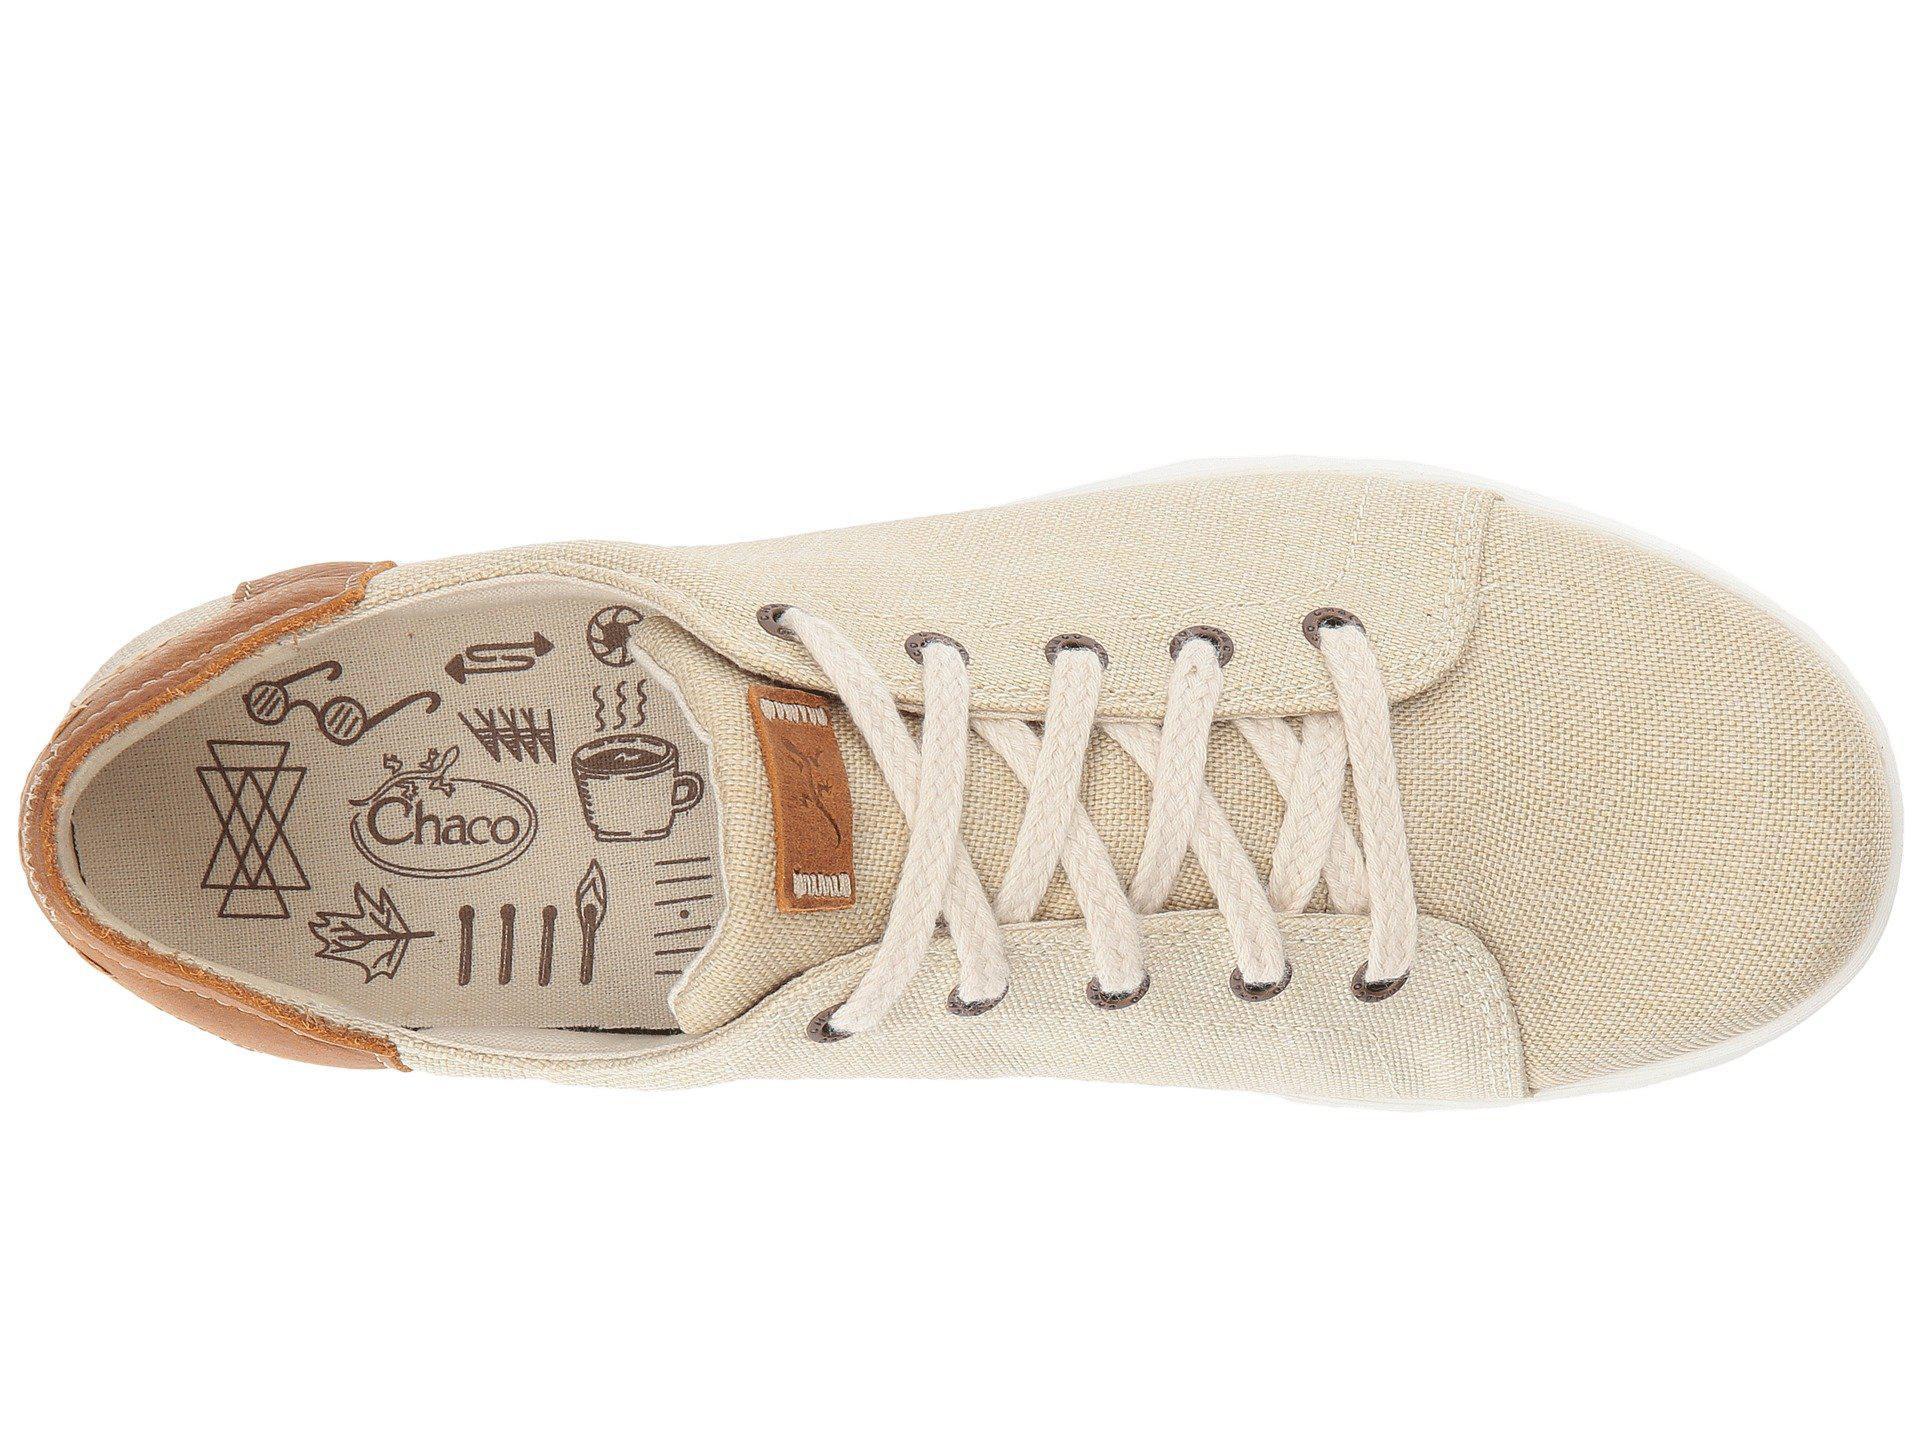 3b5835743c98 Chaco - Natural Ionia Lace - Lyst. View fullscreen